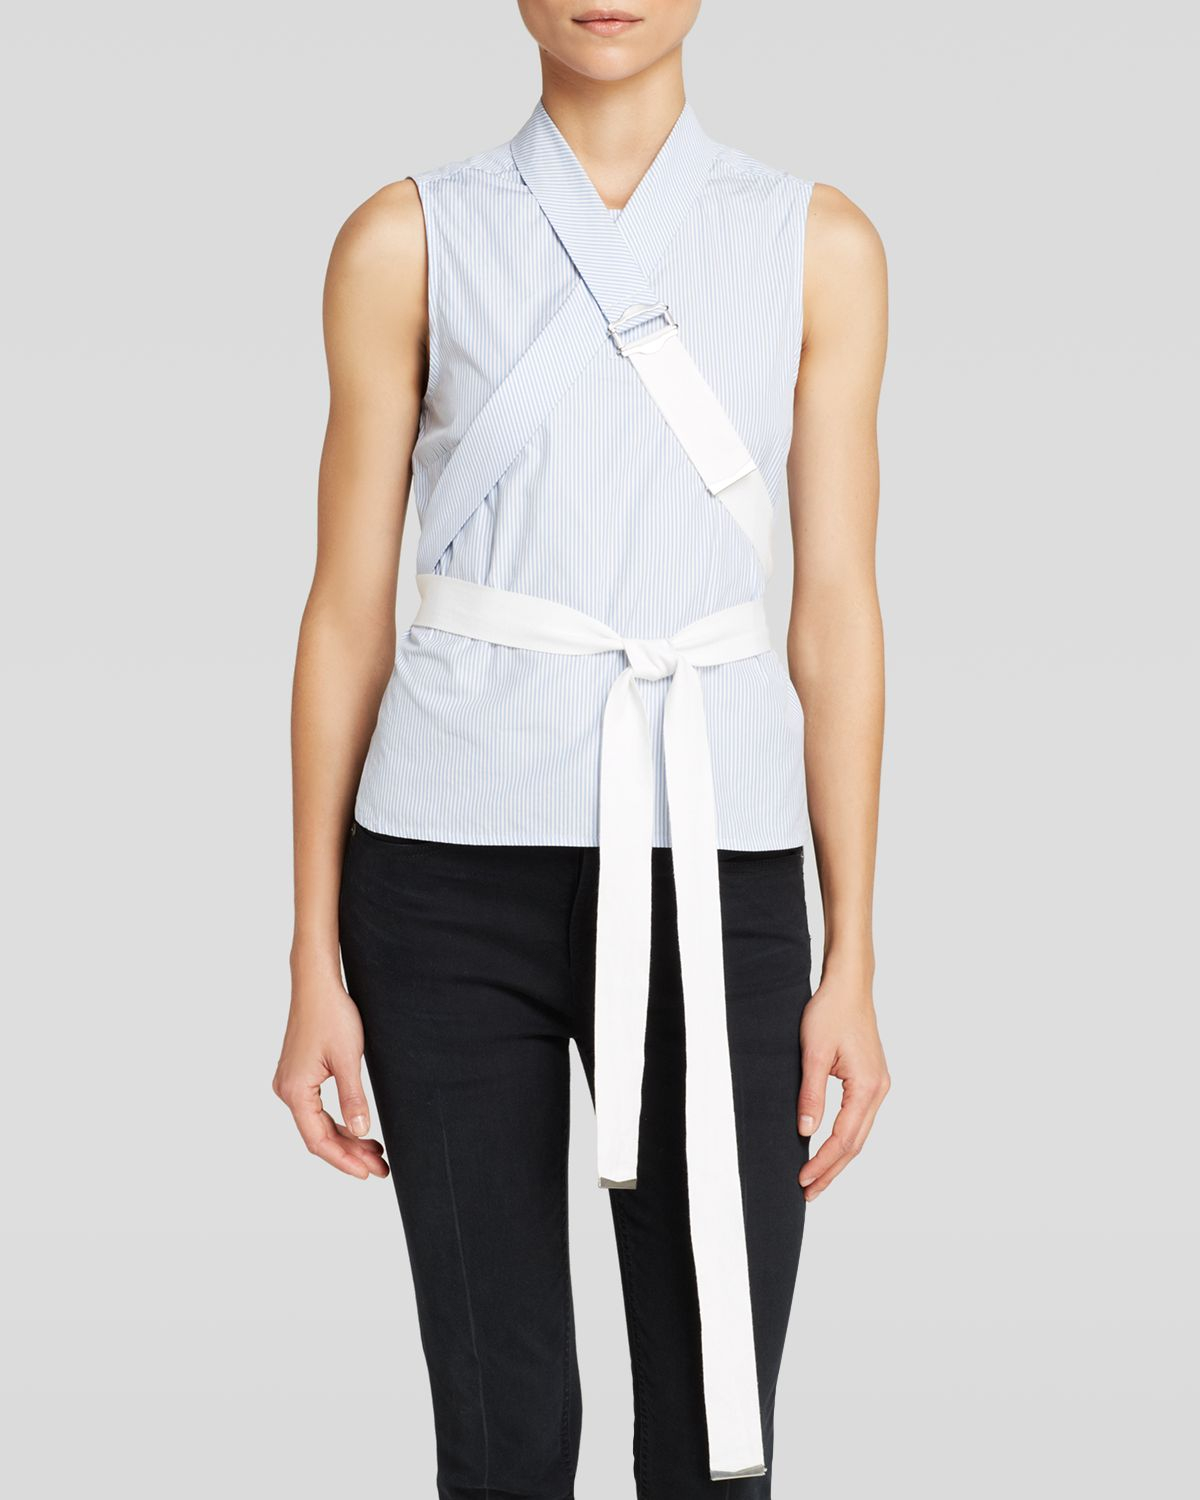 Marc by Marc Jacobs Sleeveless Knit Top Cheapest Sale Online Buy Cheap 2018 Unisex Cheap Classic HajuP3zbQx